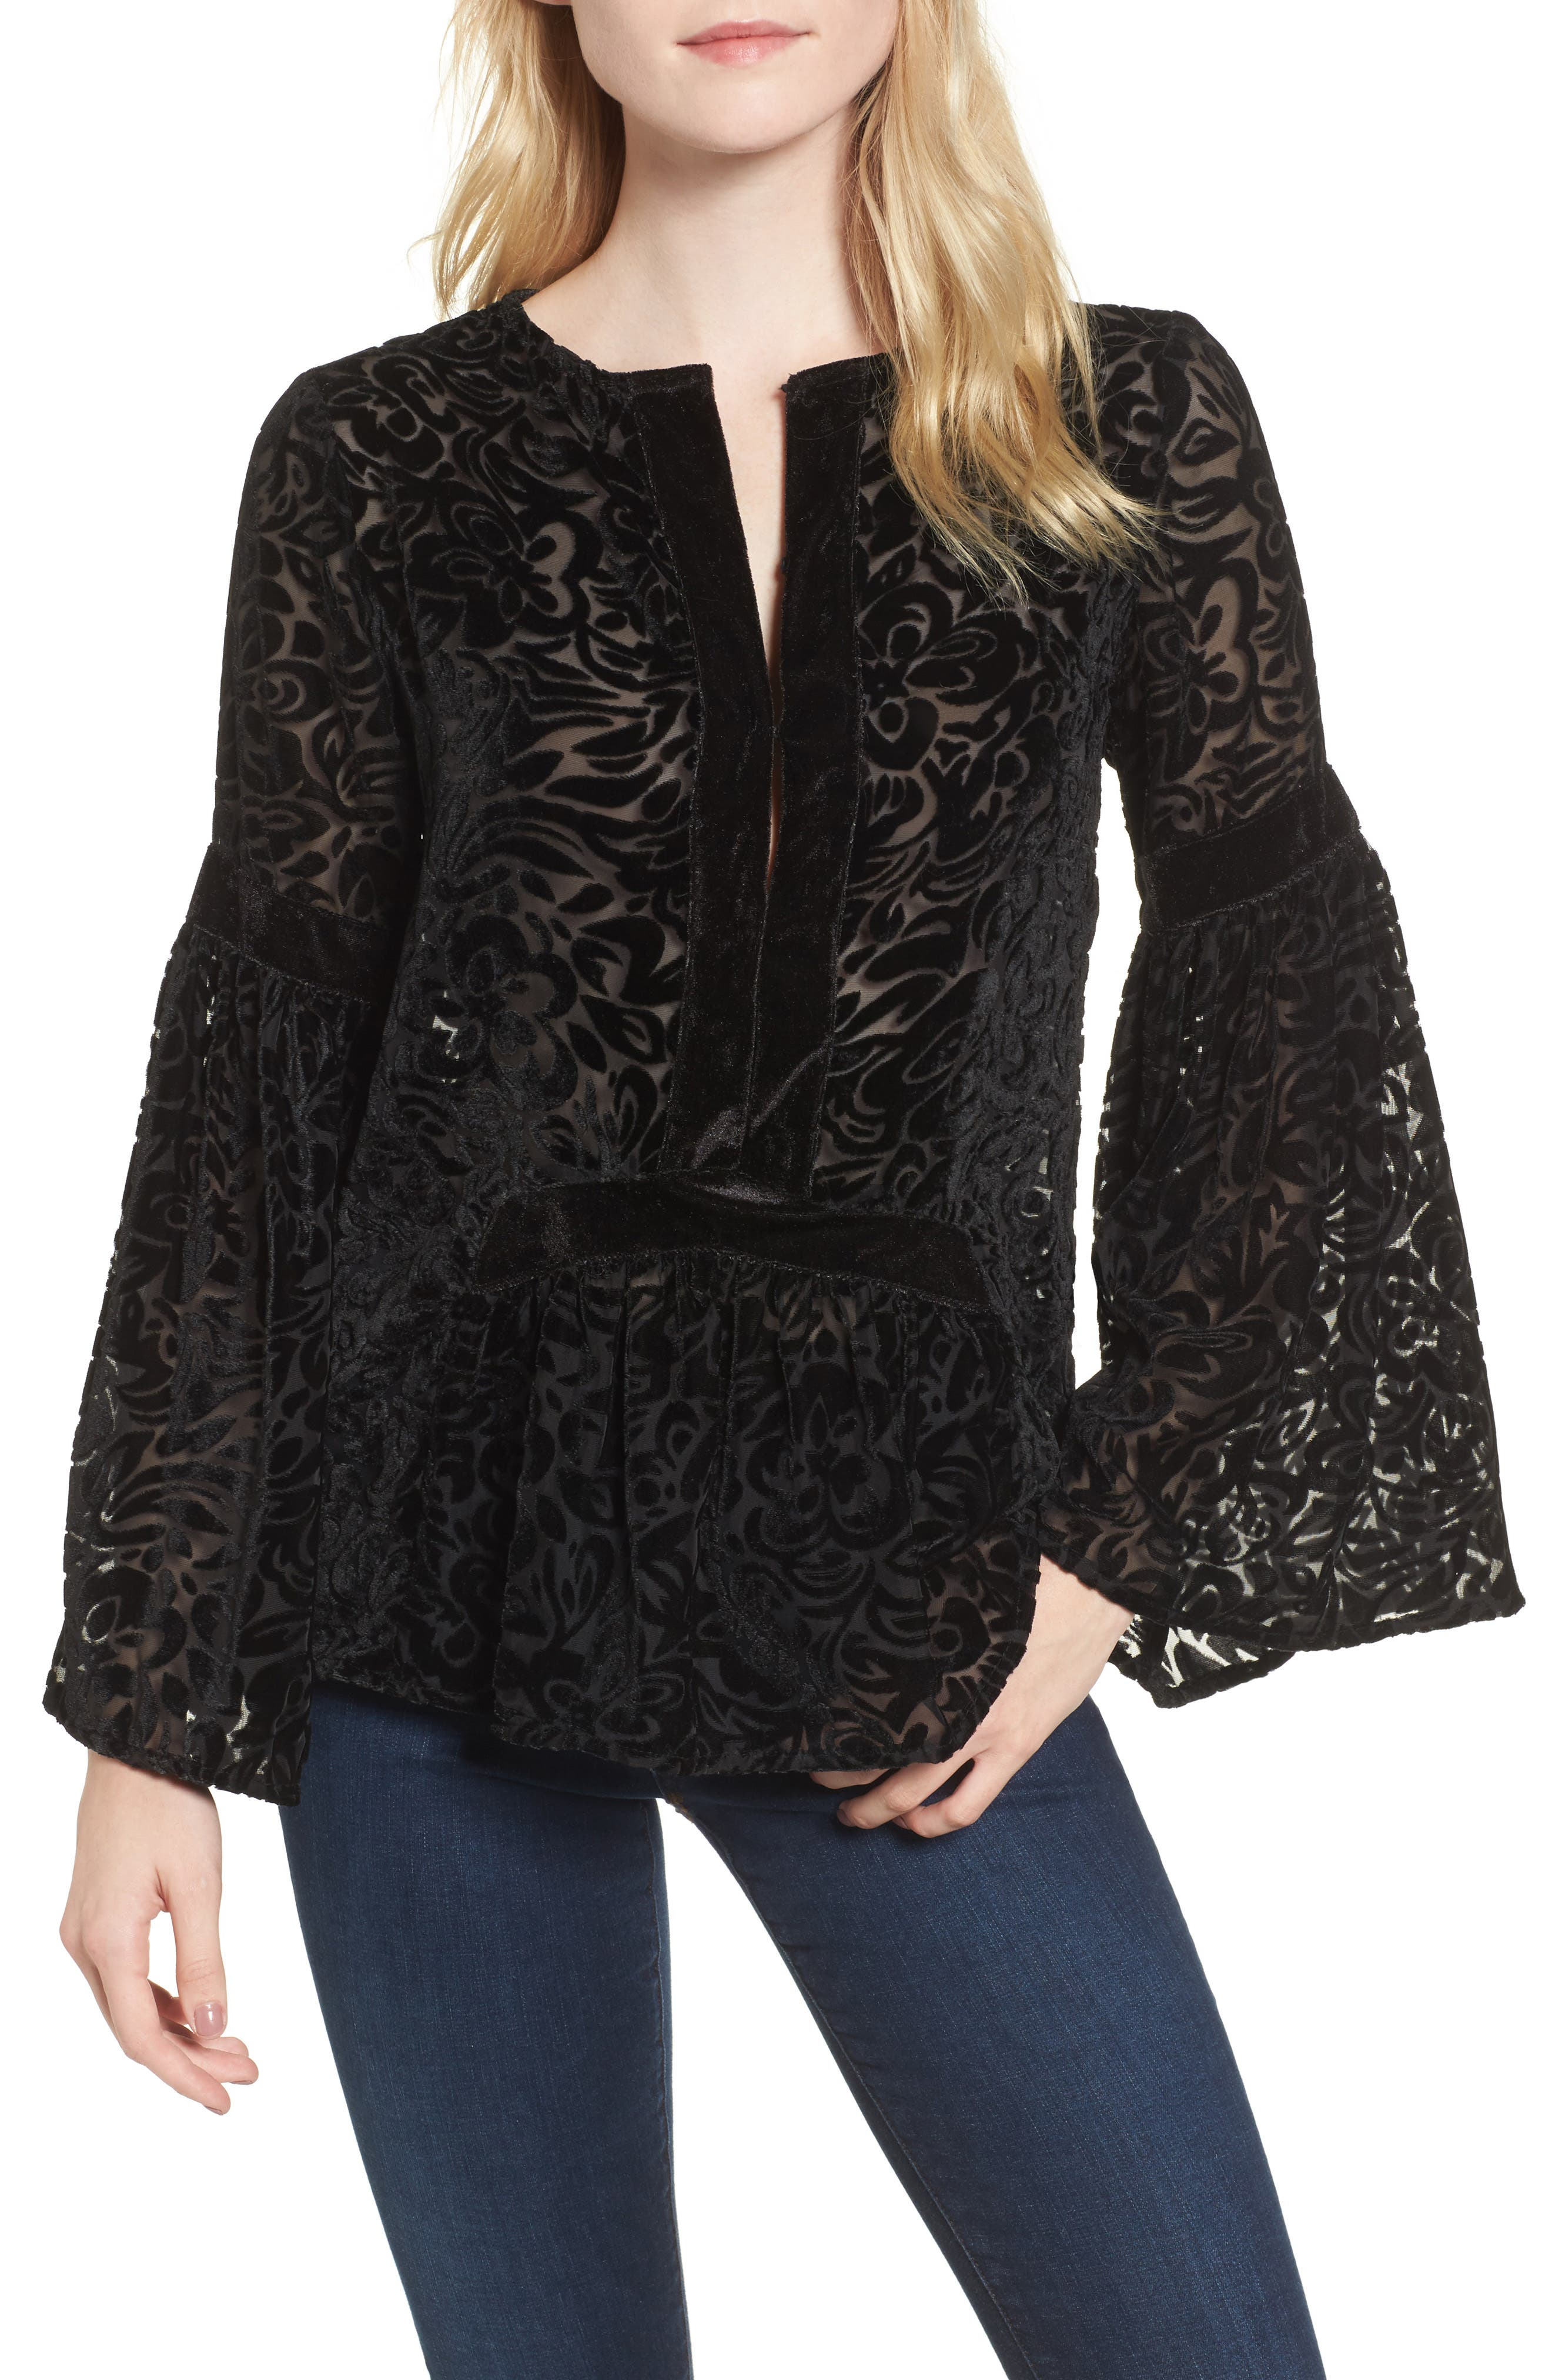 Alternate Image 1 Selected - KAS NEW YORK Velvet Burnout Bell Sleeve Peasant Top